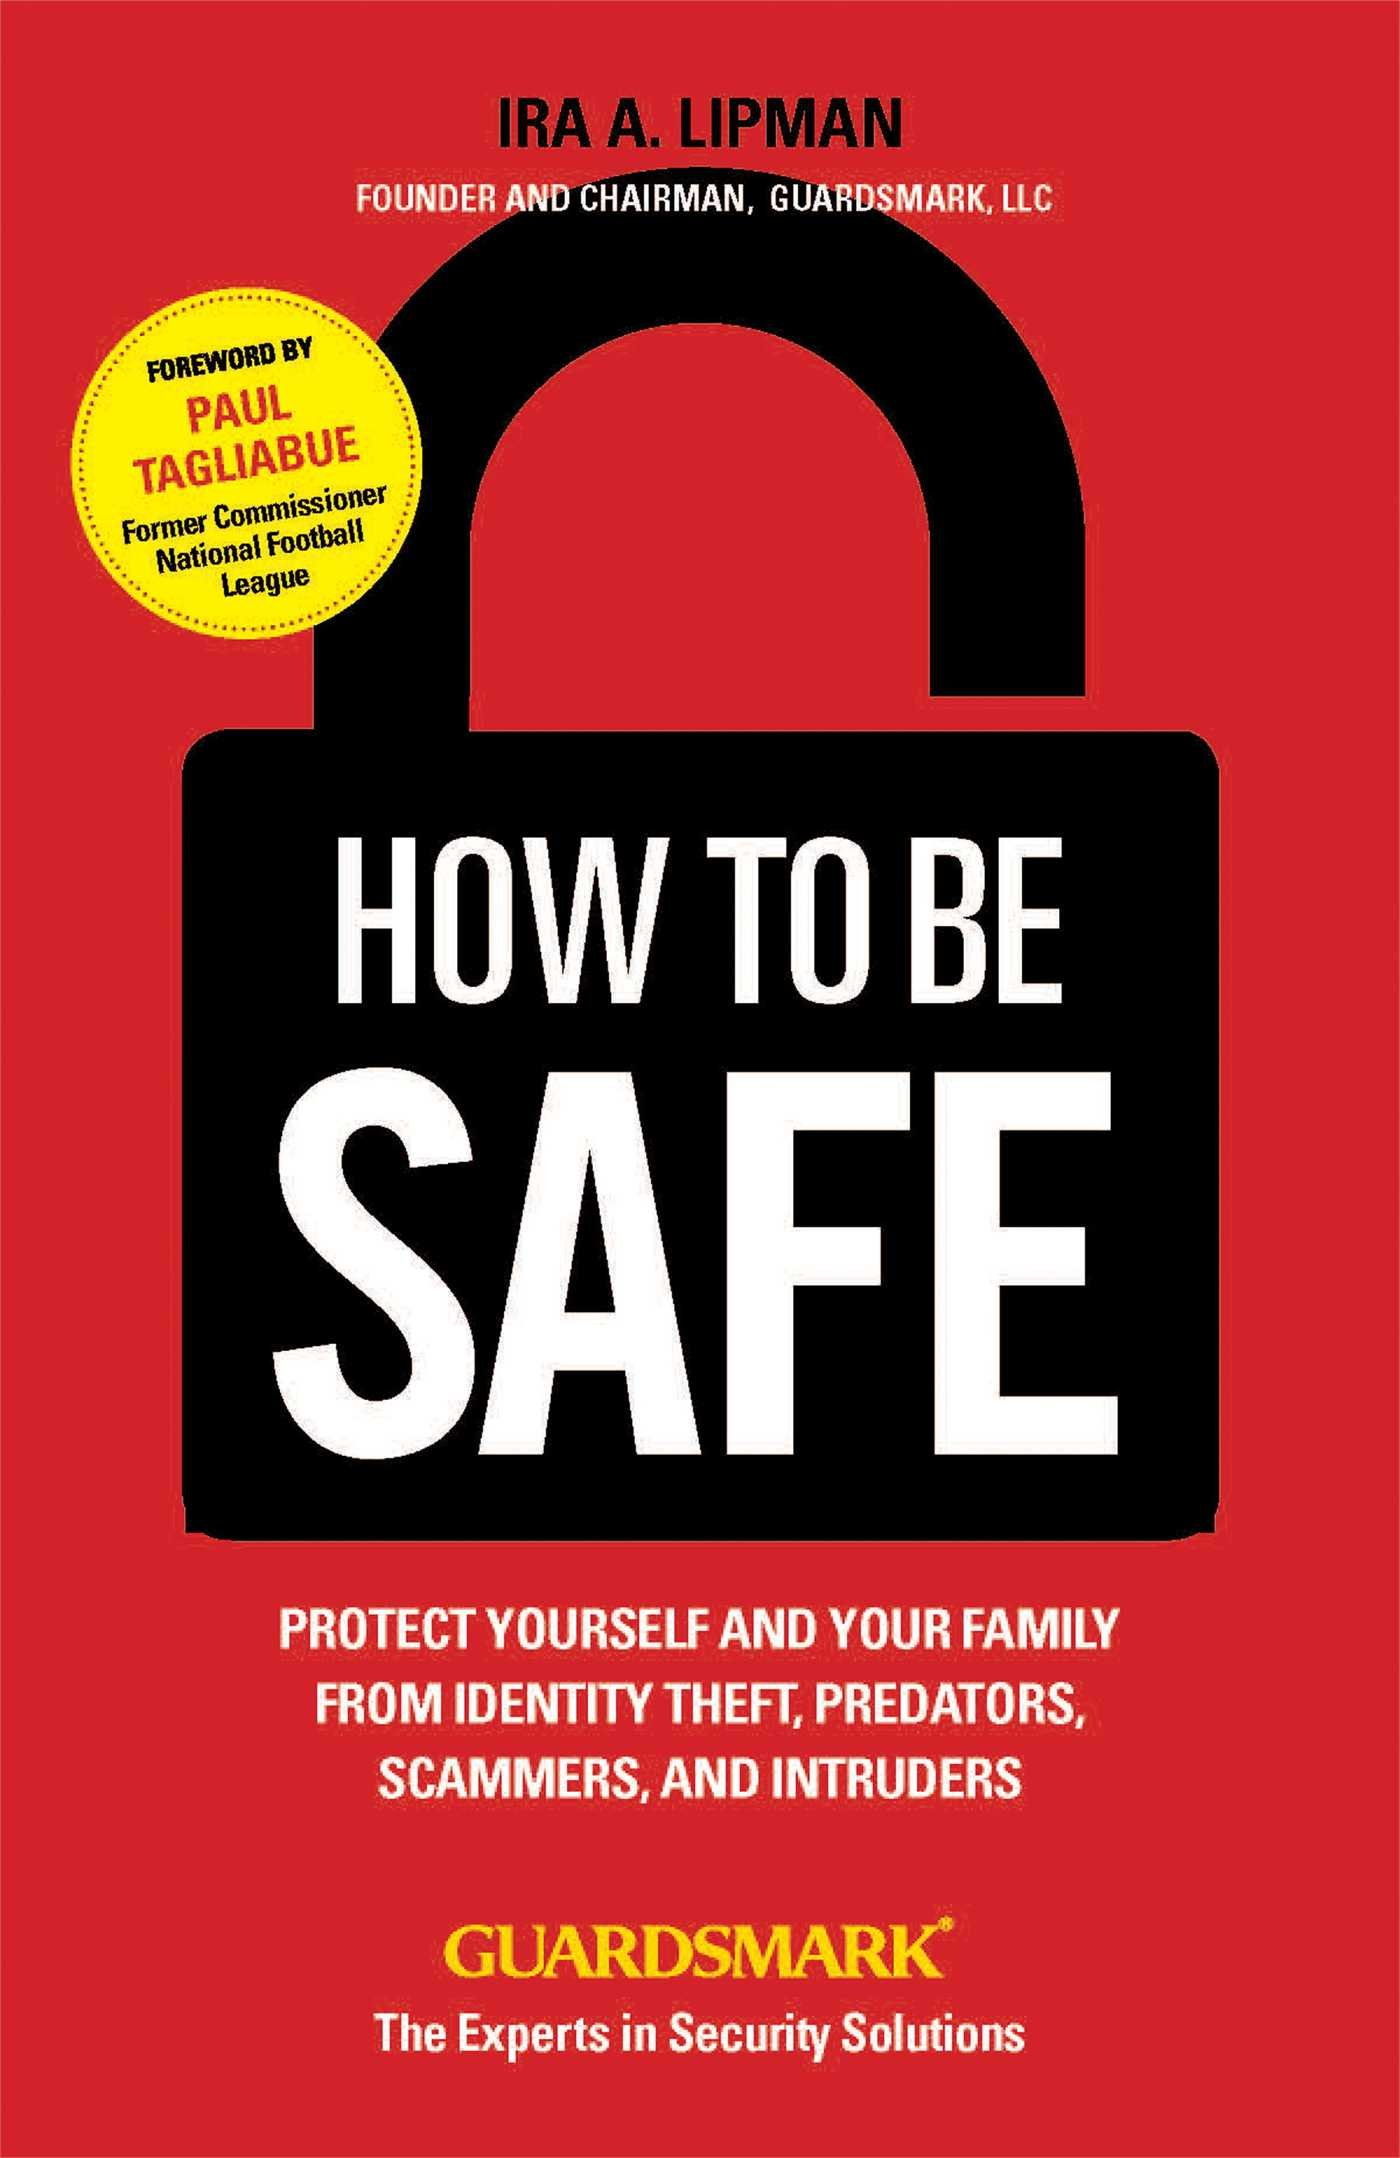 How To Be Safe: Protect Yourself and Your Family From Identity Theft, Predators, Scammers and Intruders